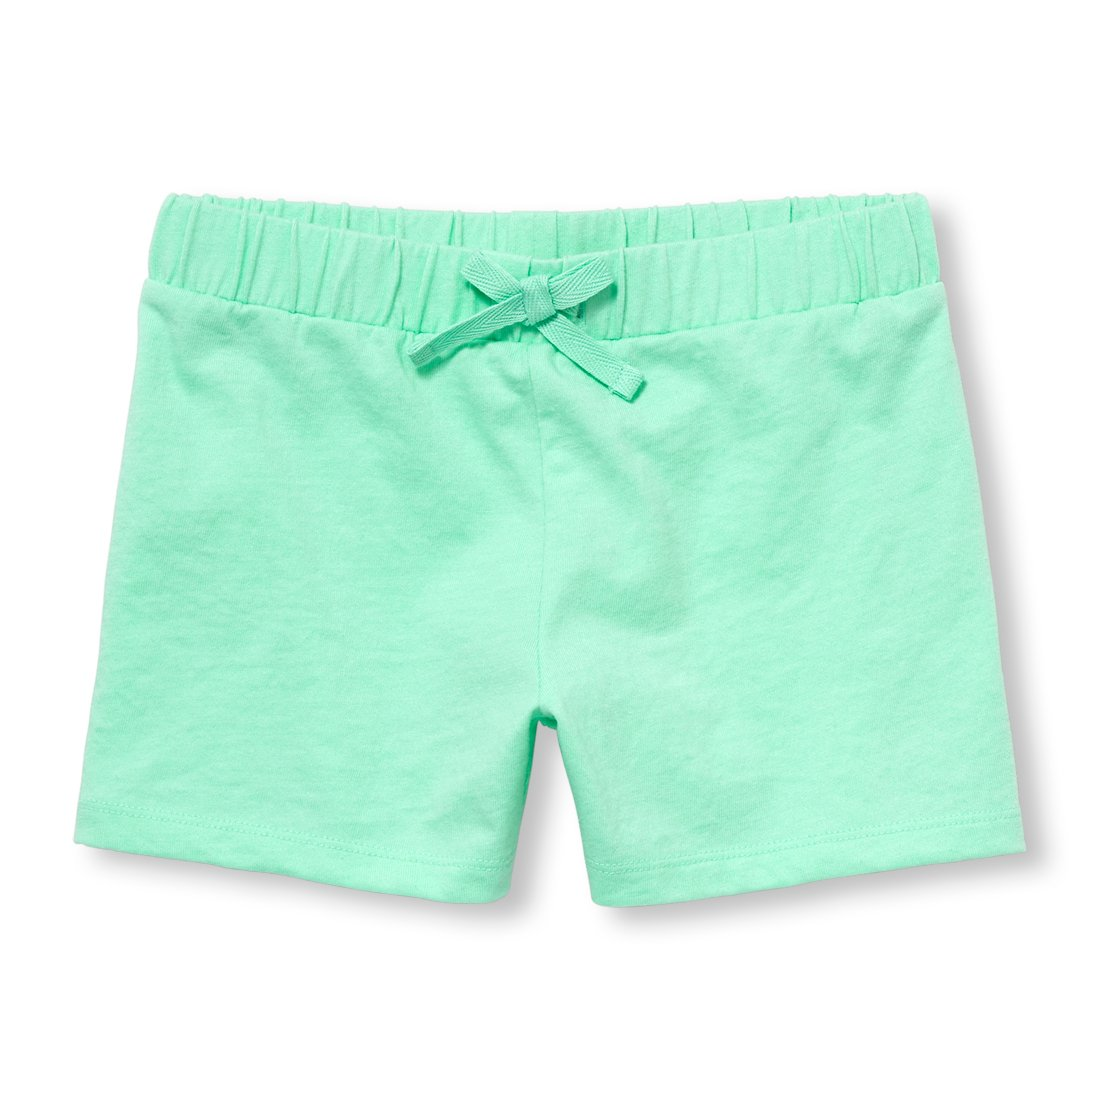 The Children's Place Girls' Fashion Short Shorts 2057737